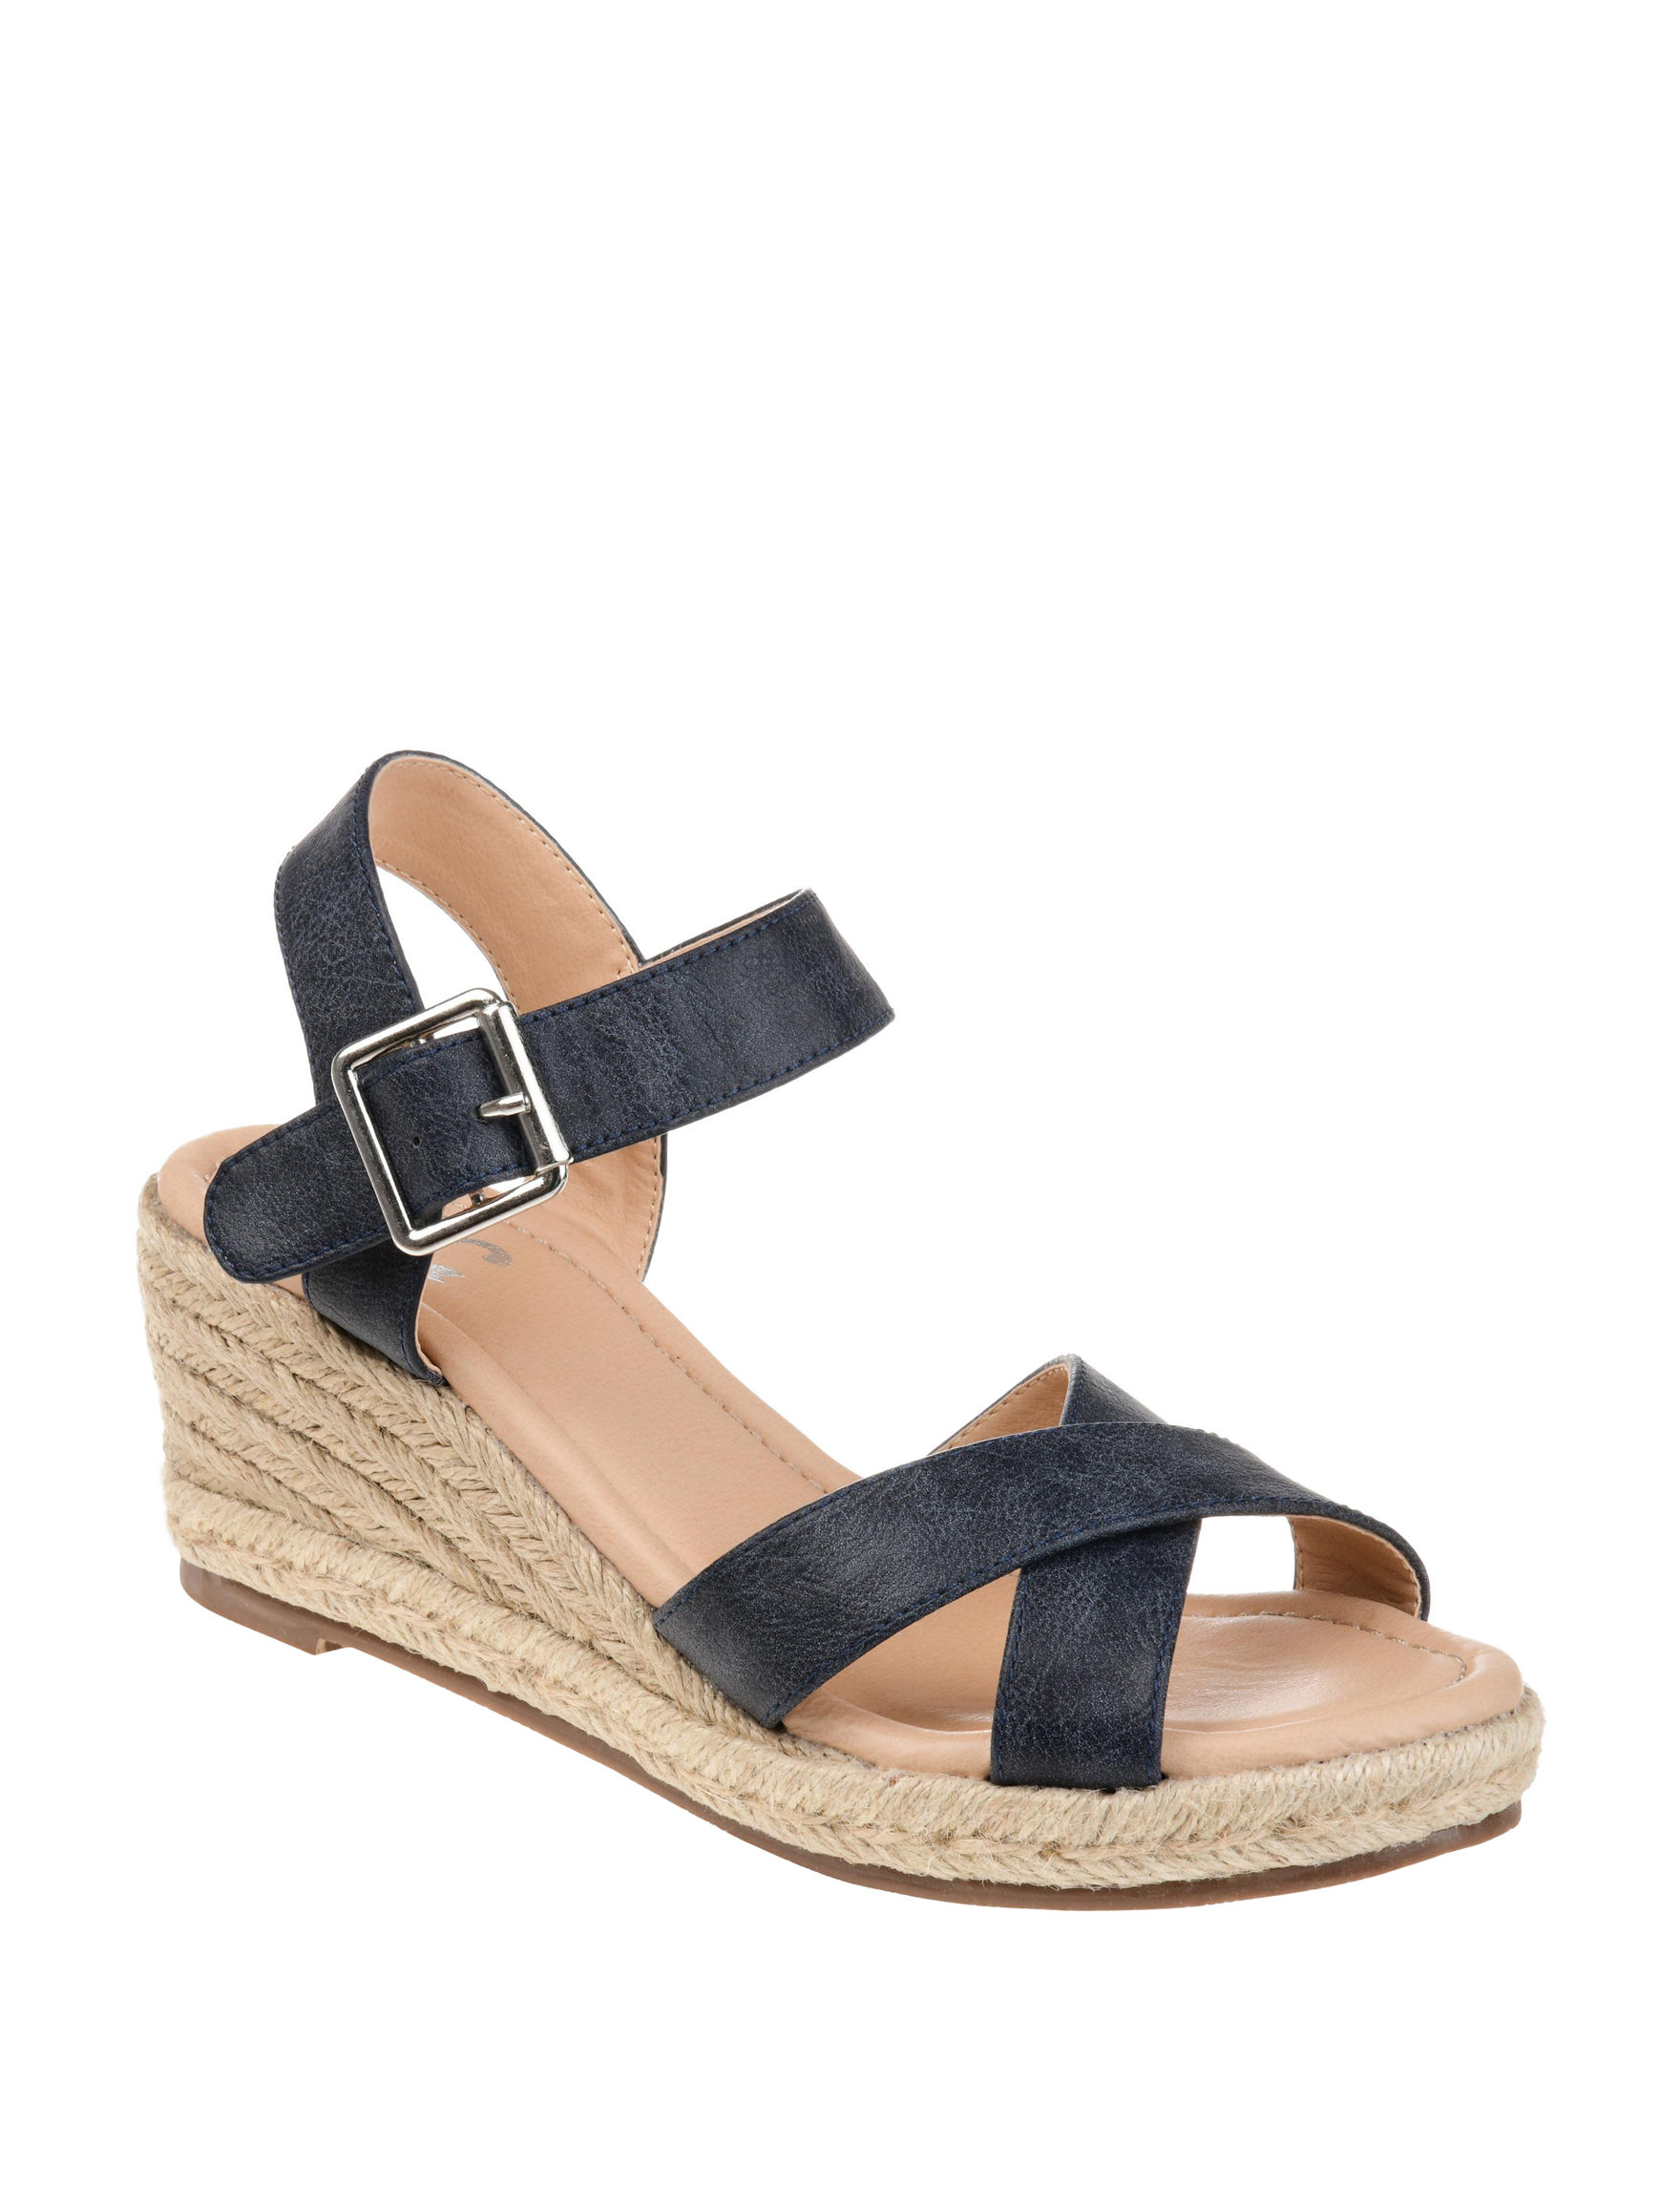 b803fb2fc687 Journee Collection Women s Dryden Comfort Espadrille Wedge Sandals